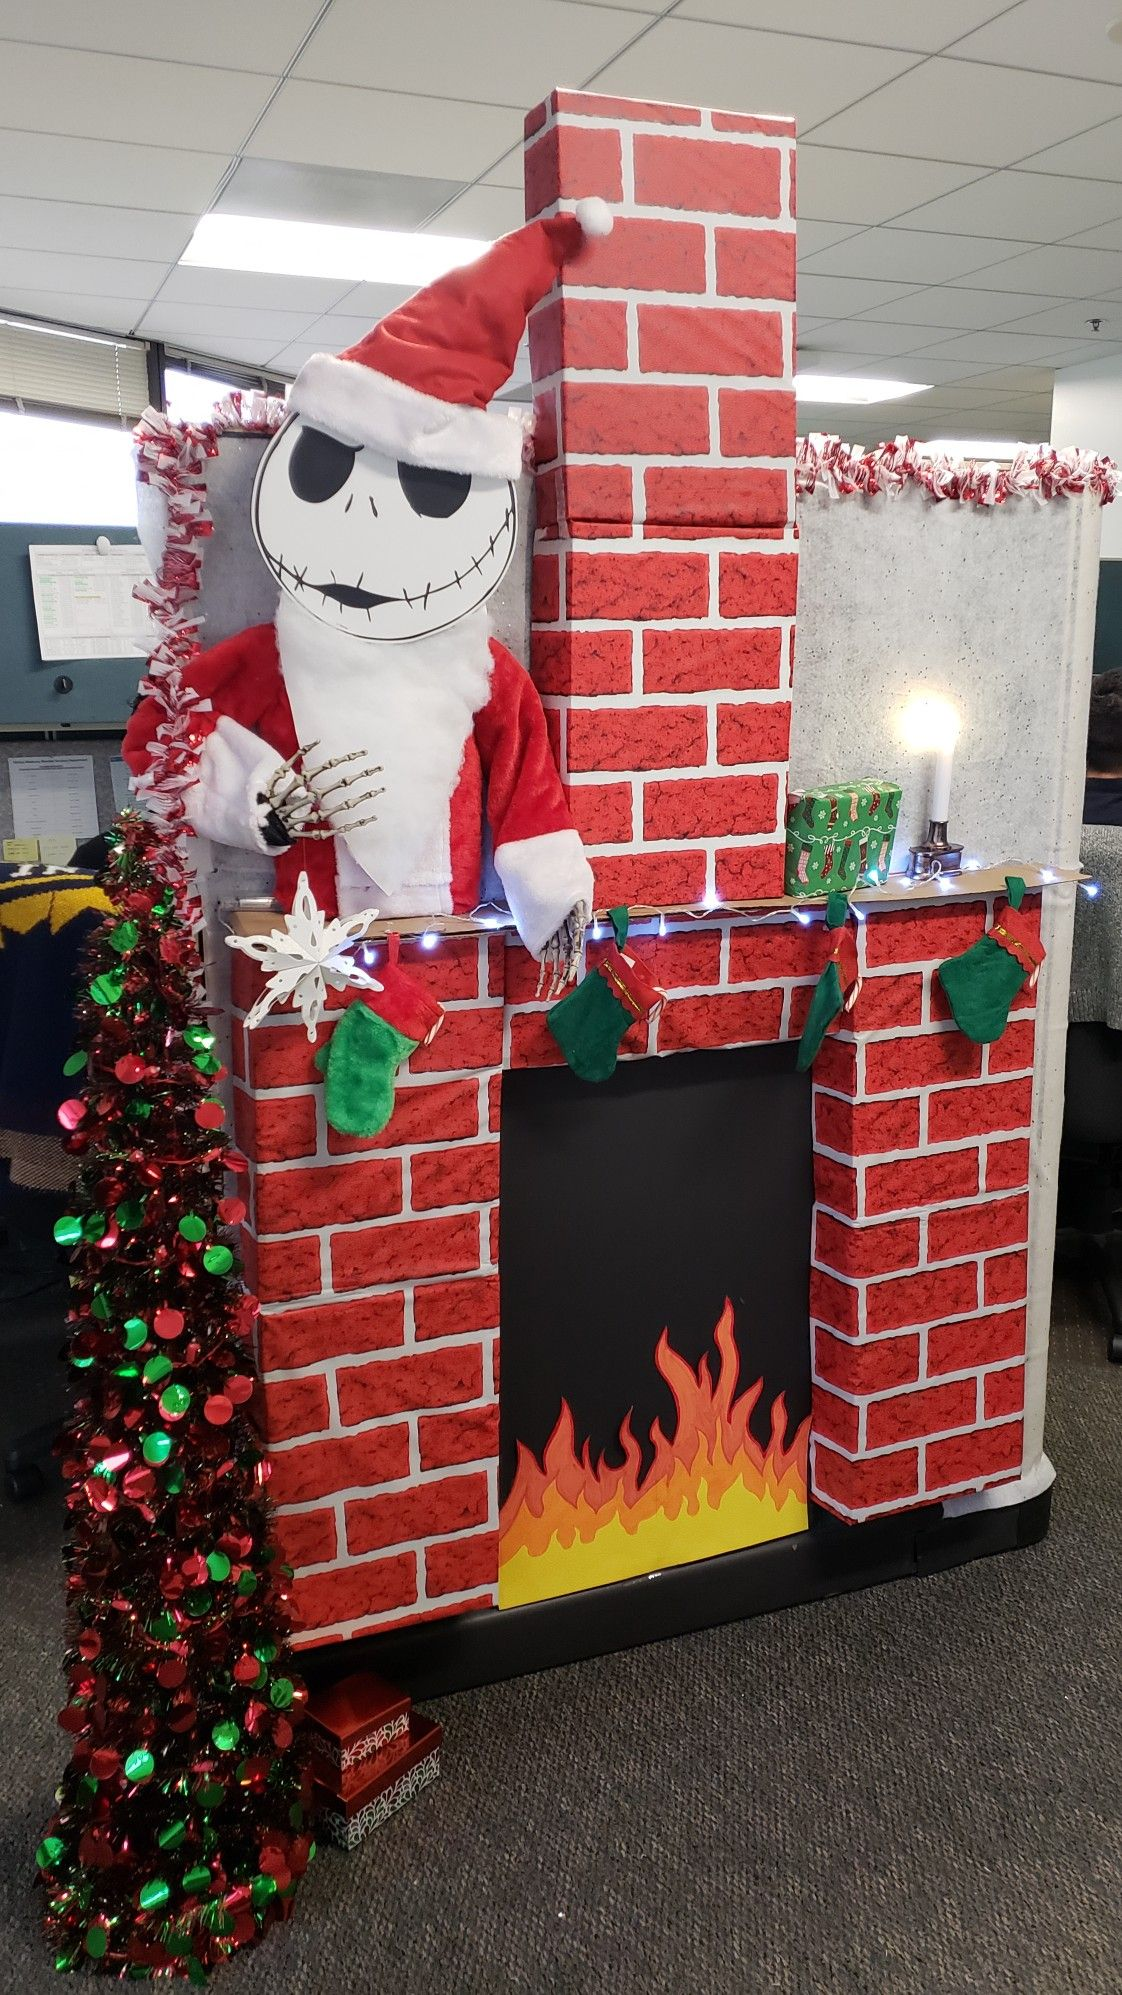 Fireplace We Made From Cardboard For Our Cubicle Decorating